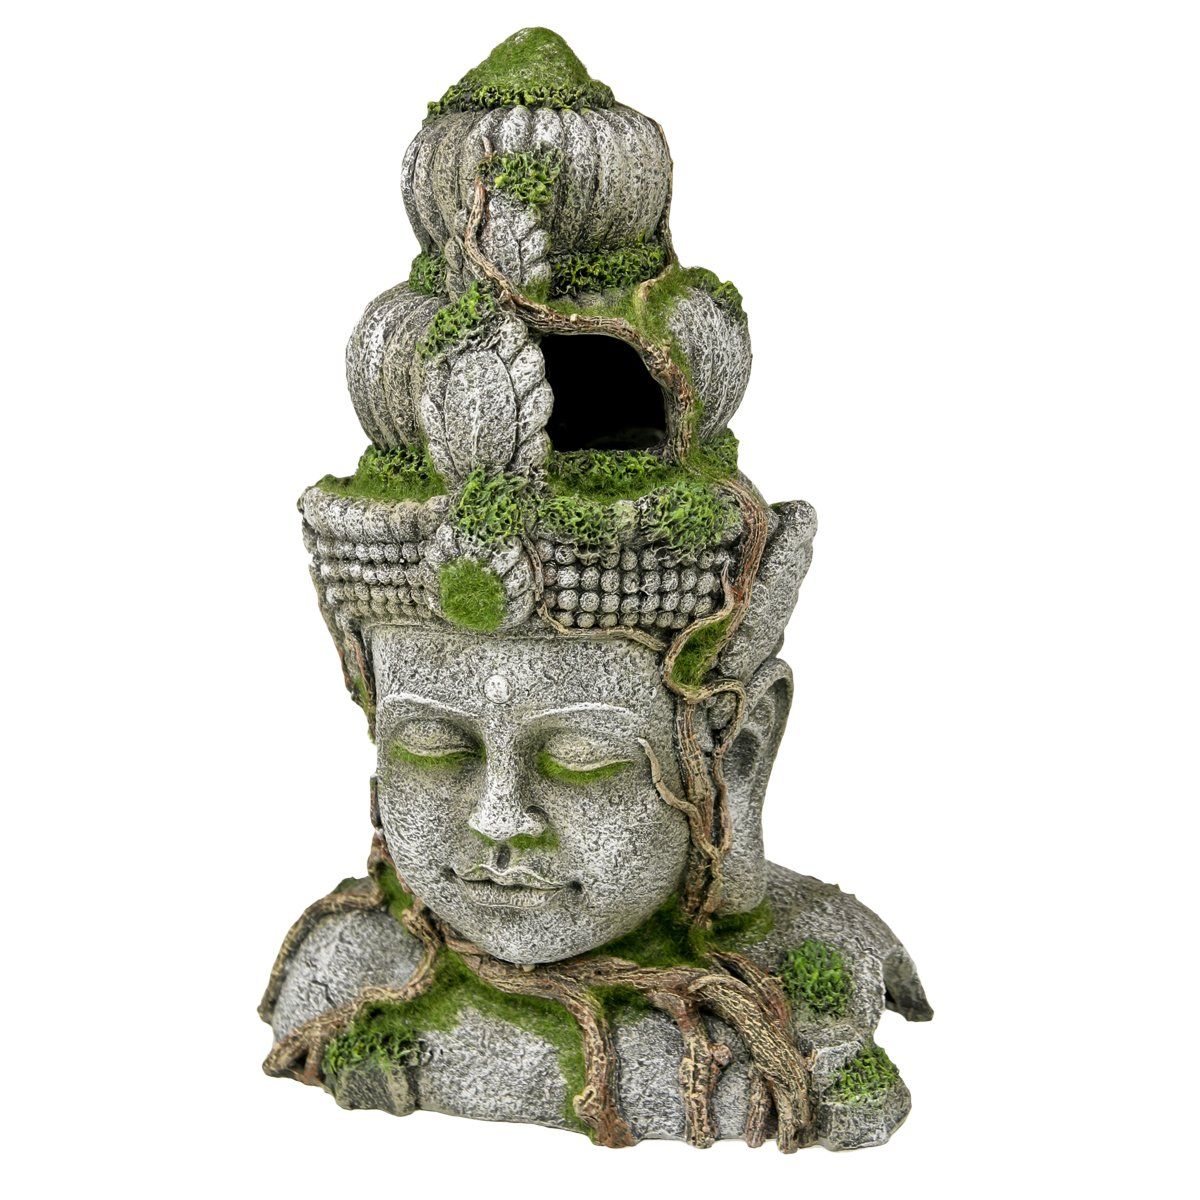 bluee Ribbon EE-697 Cambodian Warrior Statue with Moss Exotic Environments Aquarium Ornament